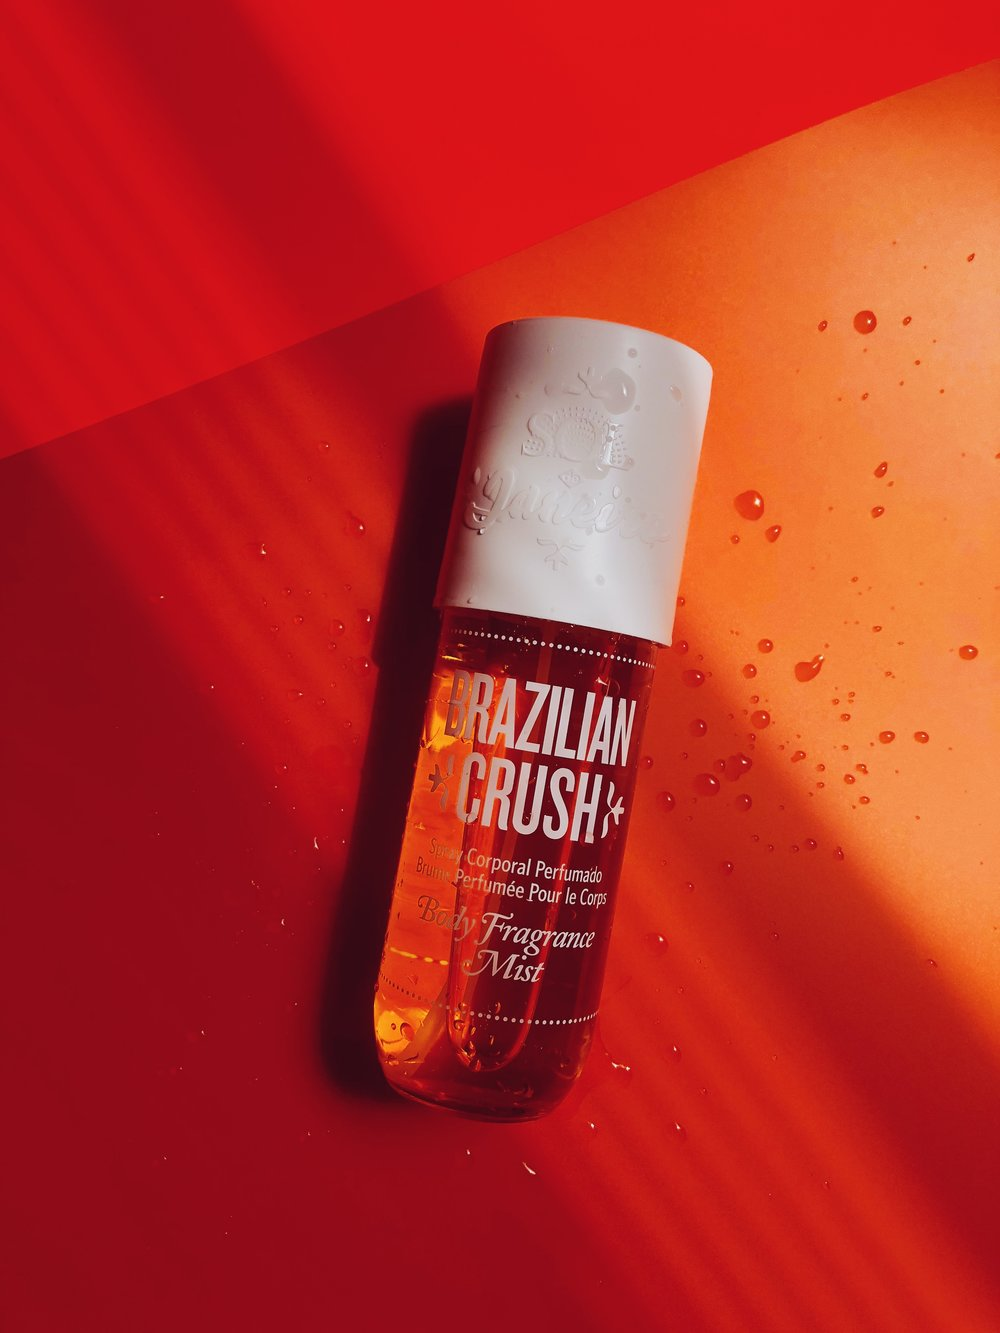 I HEARD ABOUT THE   BRAZILIAN CRUSH BODY FRAGRANCE MIST BY SOL DE JANEIRO   A VLOG AND I HAD TO TRY! FIRST OF ALL, THE WHOLE LOOK JUST SPEAKS TO ME, I LOVE THE COLOR AND THE WHOLE SUMMER VIBE. AND SECOND (AND FAR MORE IMPORTANT) - THE SMELL IS JUST WOW! I'M INTO VERY SWEET SCENTS AND THIS IS MIX OF PISTACHIO AND SALTED CARAMEL IS EVERYTHING! IT'S SUPER SWEET BUT NOT TOO SWEET AND I PREFER IT SO MUCH OVER A PERFUME IN SUMMER. IT JUST FEELS WAY LIGHTER AND I SPRITZ MY WHOLE BODY WITH IT TO FEEL EXTRA FRESH. - J